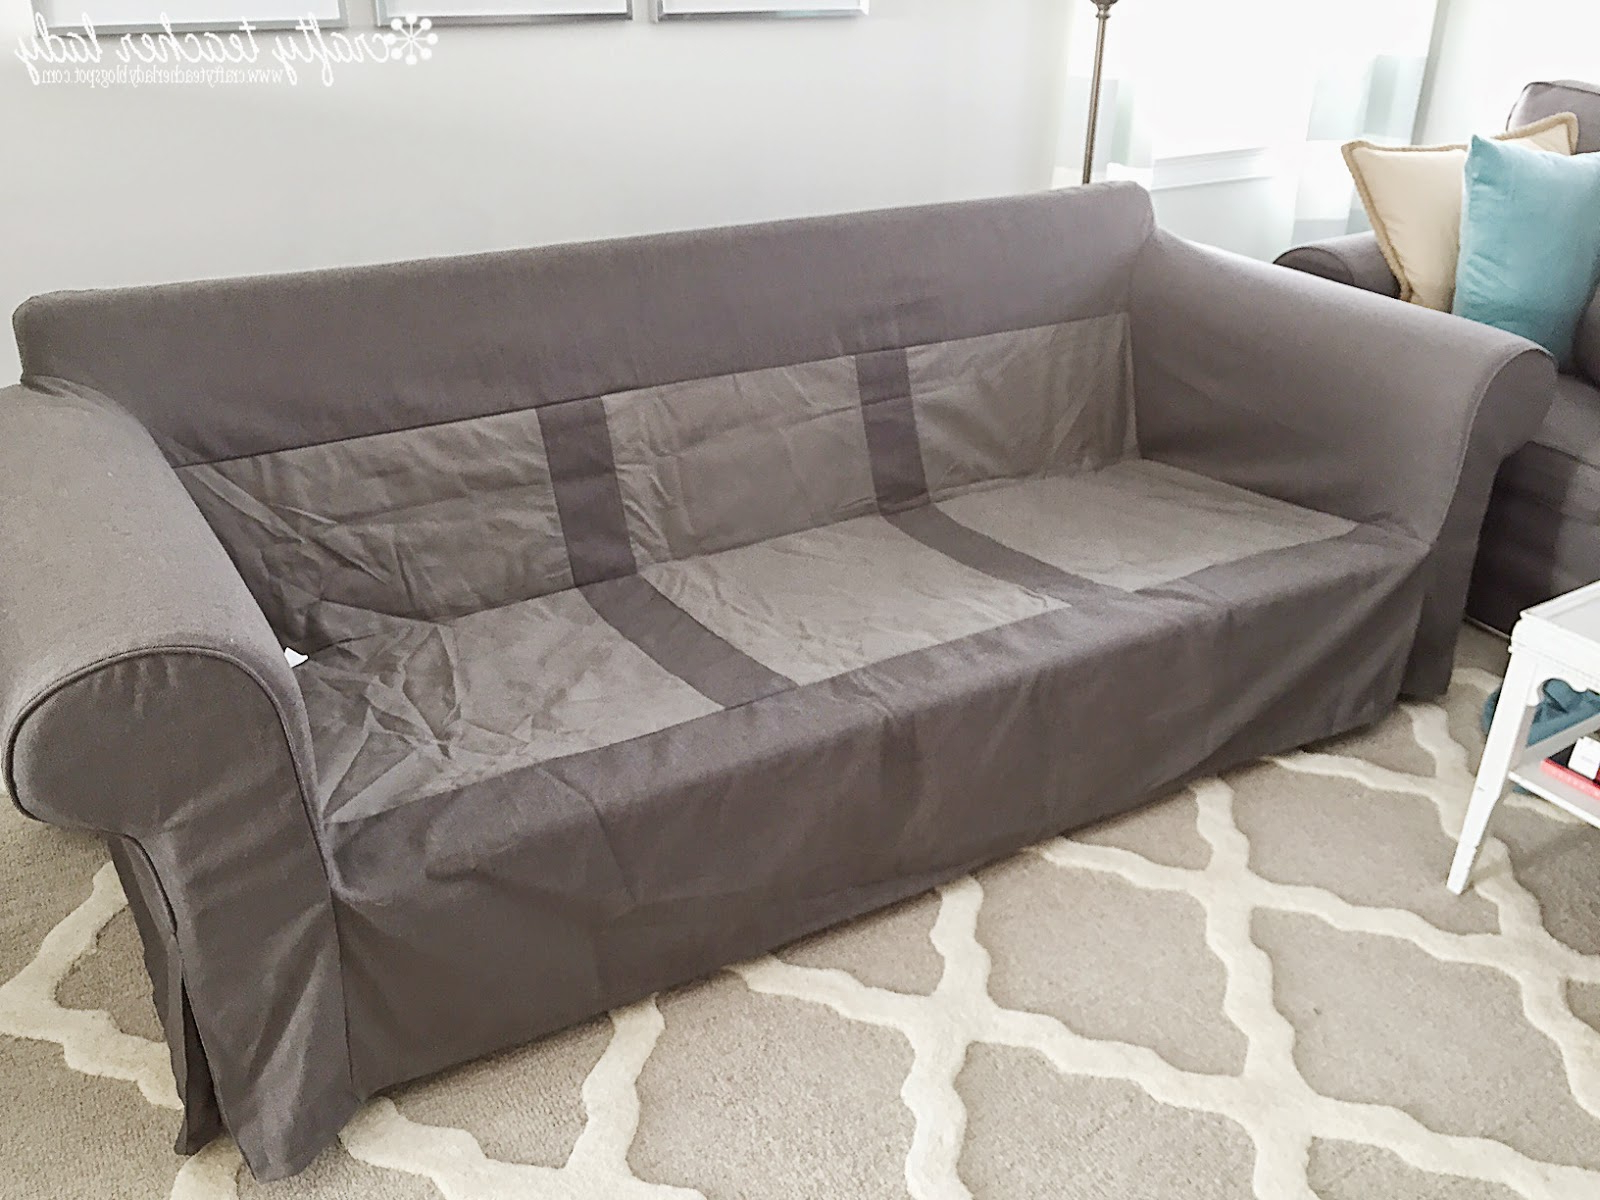 Most Current Furniture: Fresh New Look Ektorp Slipcovers For Your Living Room Throughout Sofa And Chair Slipcovers (View 10 of 20)